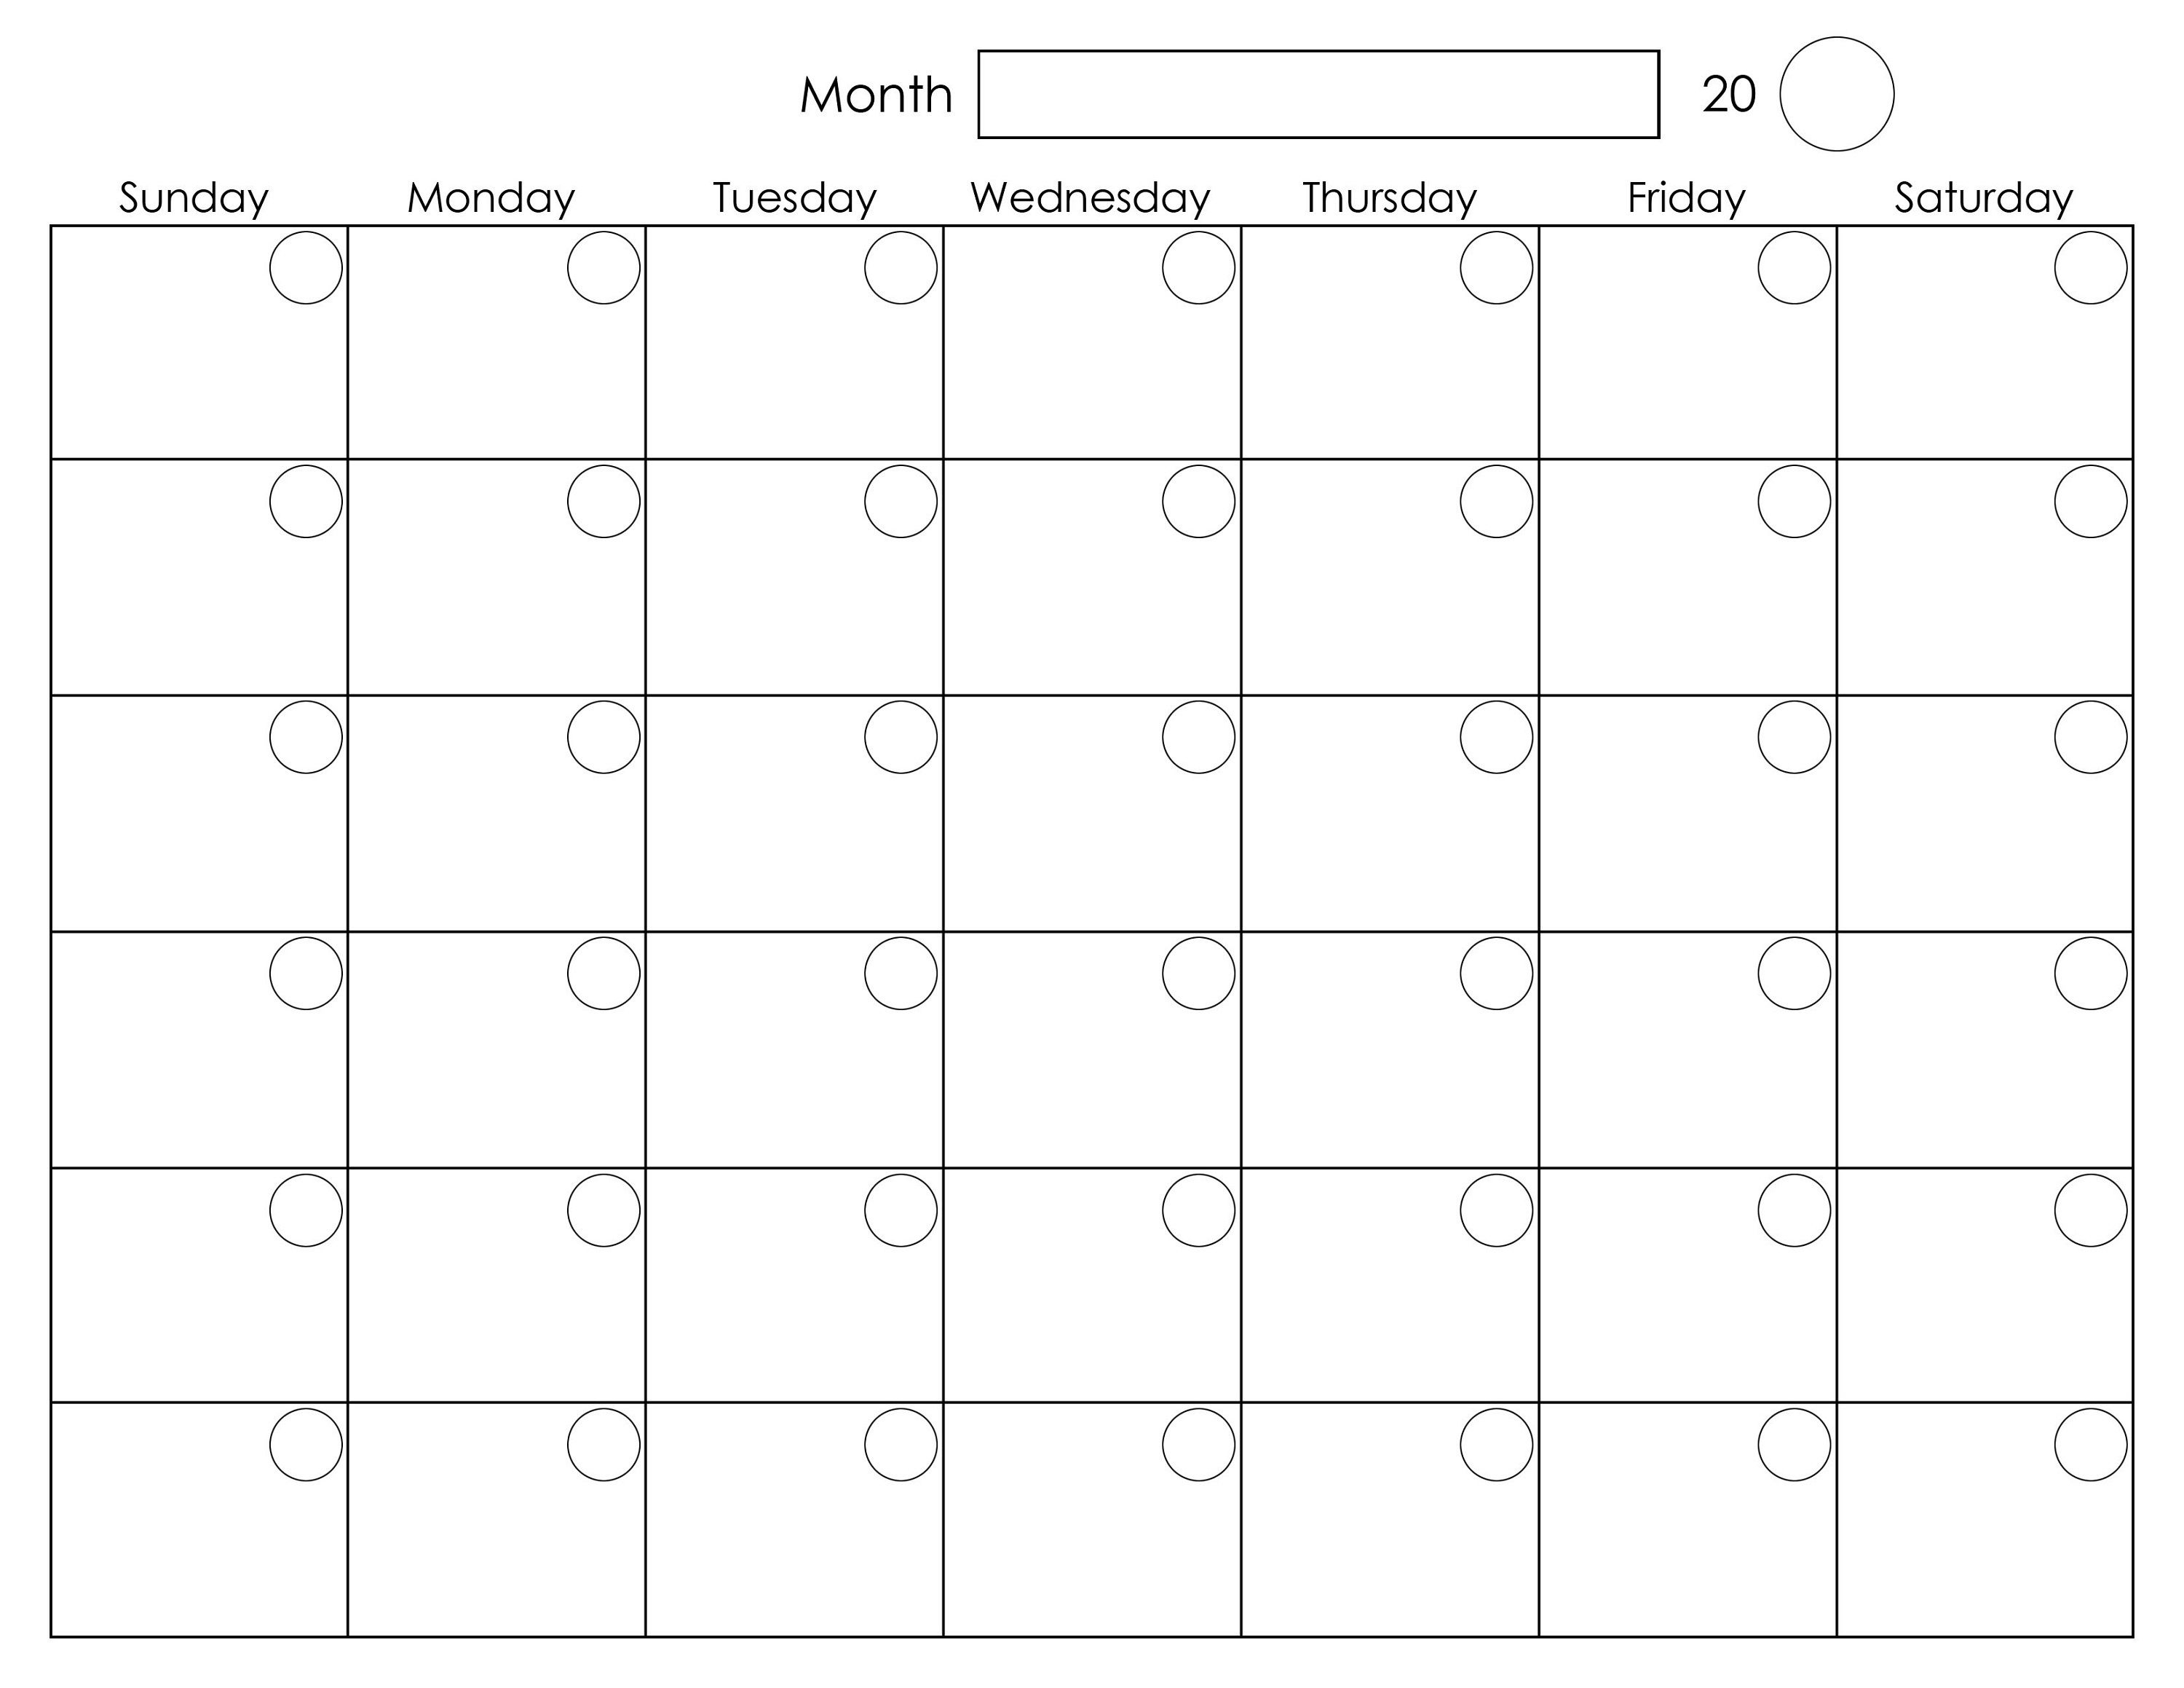 printable blank monthly calendar activity shelter calendar Free Printable Monthly Calendar With Lines erdferdf